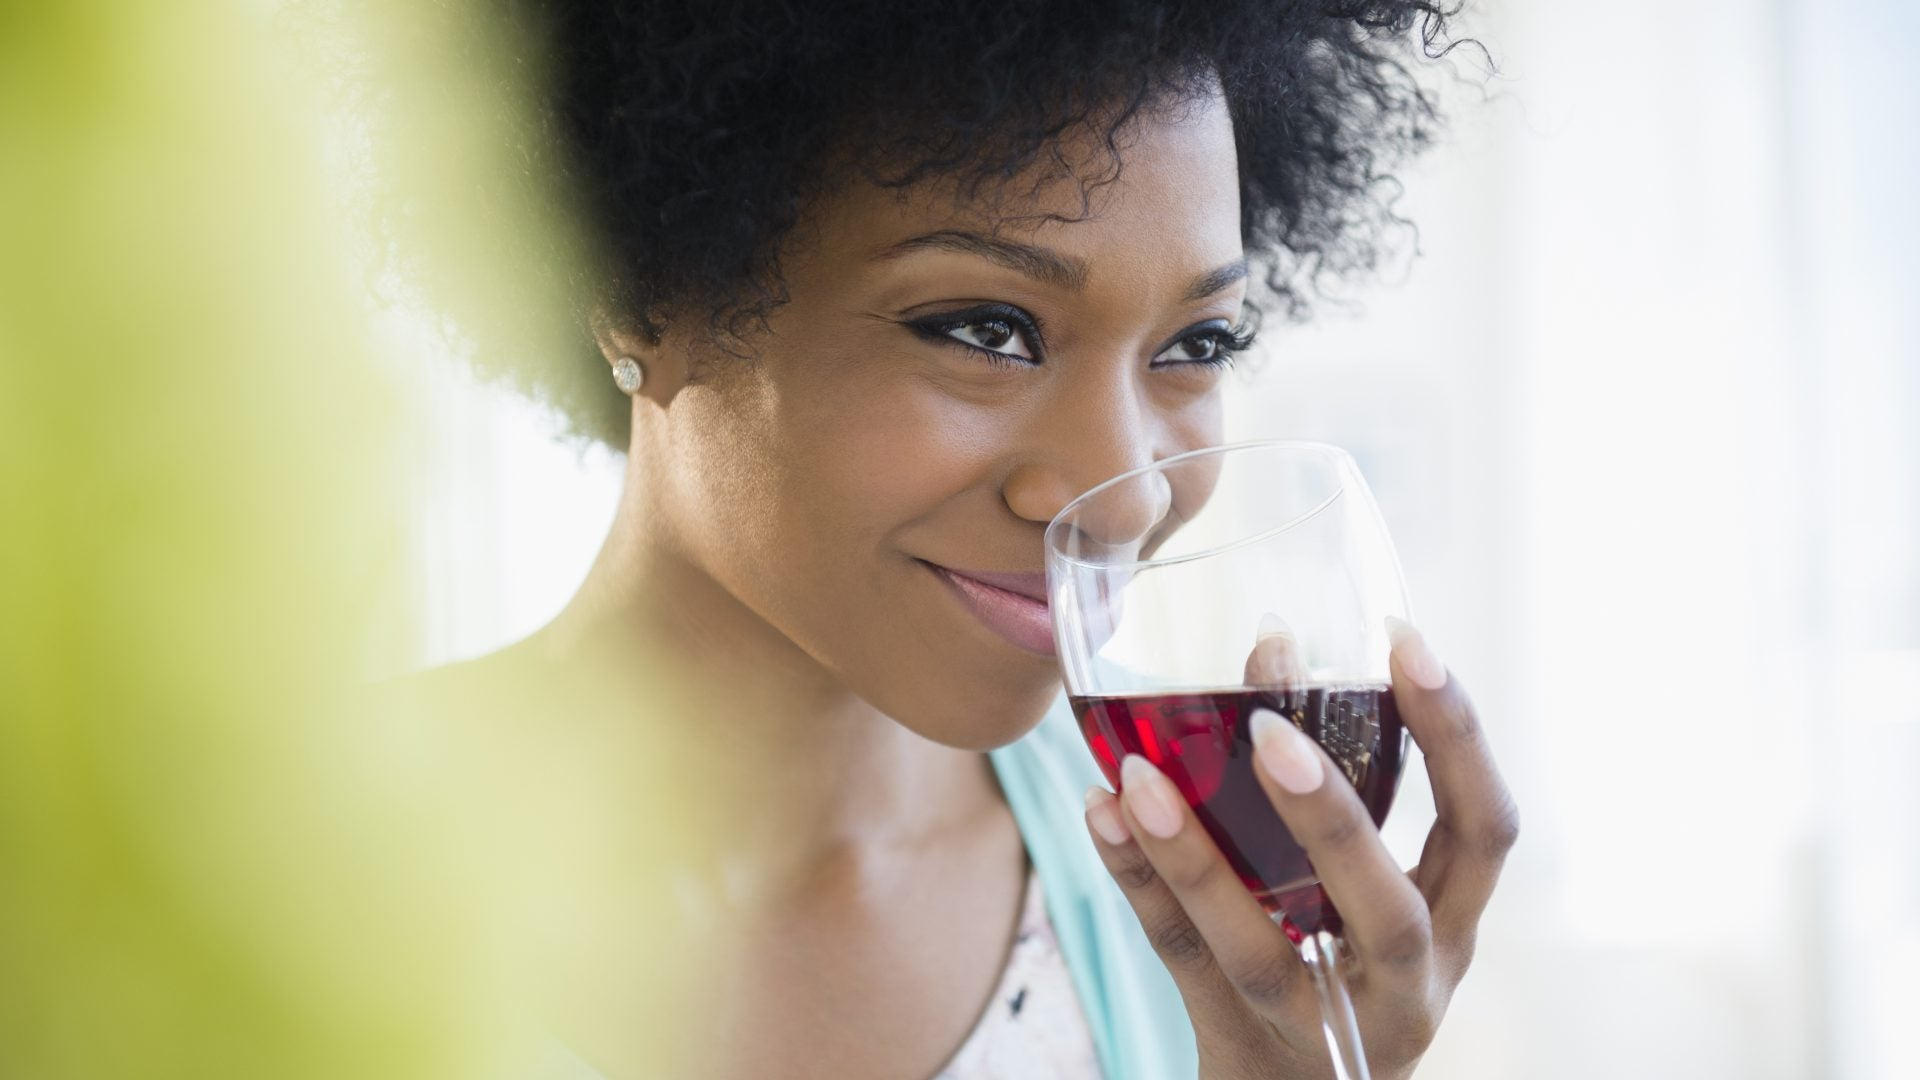 Cheers To The Weekend! 3 Cocktails You Can Enjoy Tonight Guilt-Free